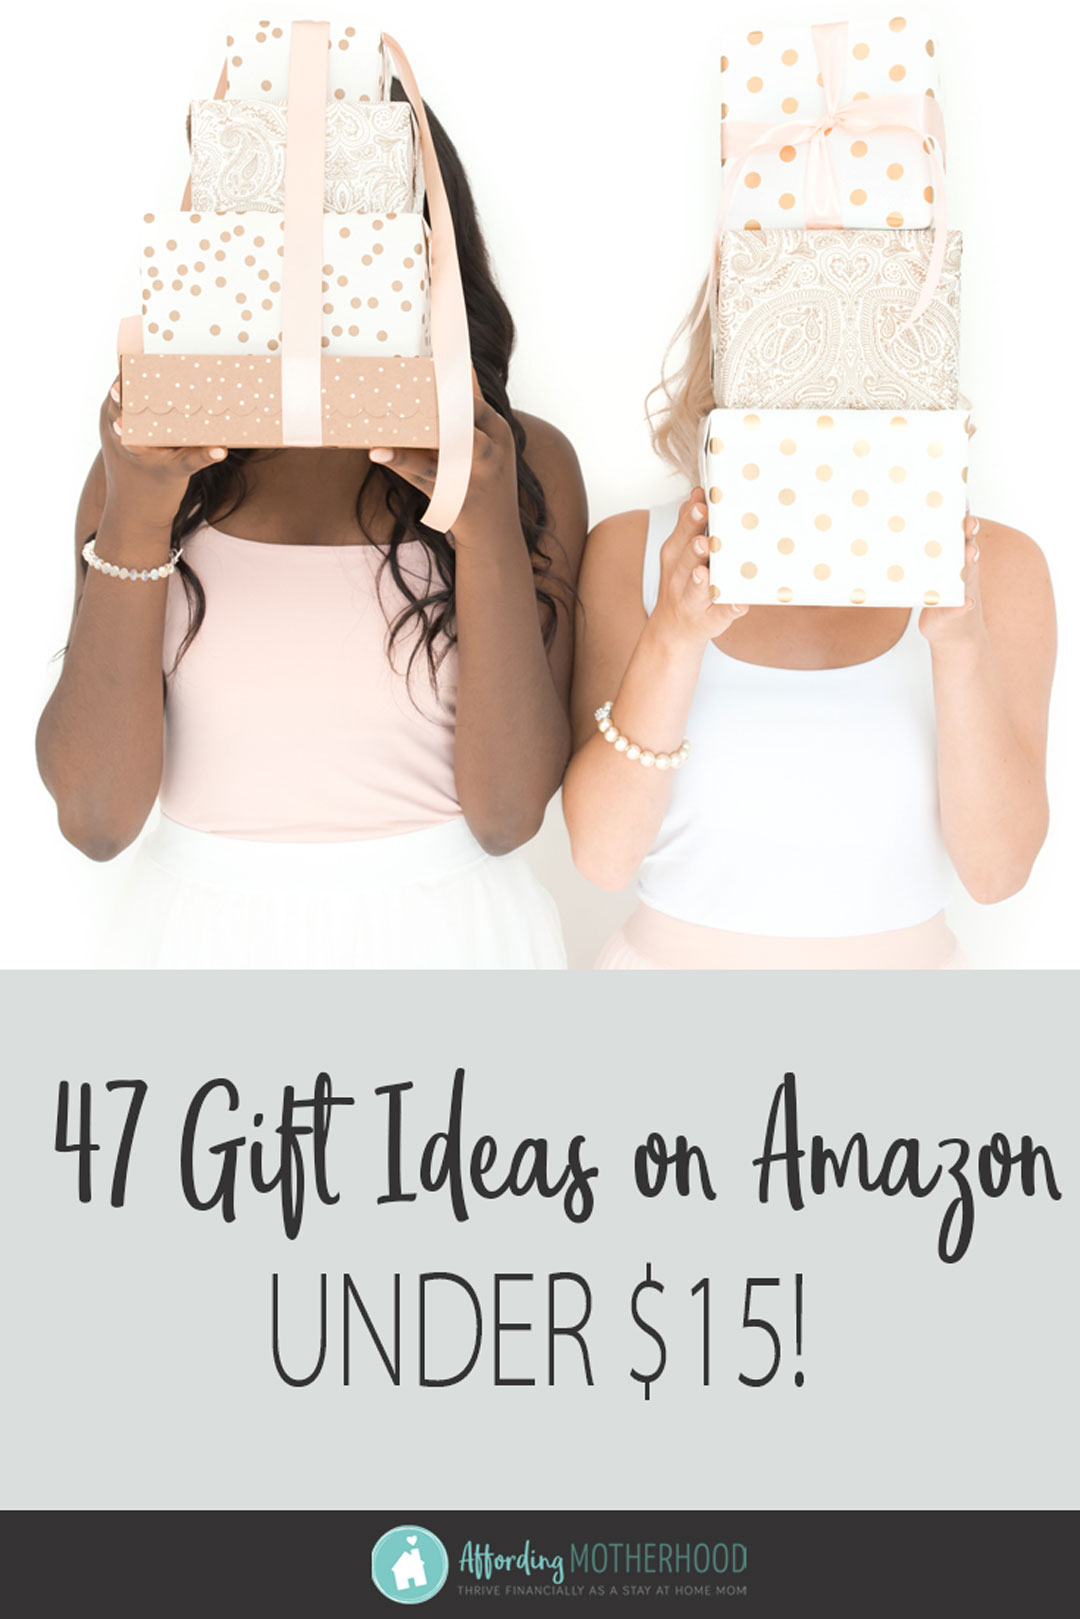 47 Frugal Amazon Gift Ideas - Avoid the crowds and save money with these fun Amazon gifts for the men, women, girls, and guys on your Christmas list this holiday season! Plus every product listed is eligible for free shipping and is under $15! Finish off your Christmas shopping with these easy gift ideas and stocking stuffers for him, for her, and for the kids.